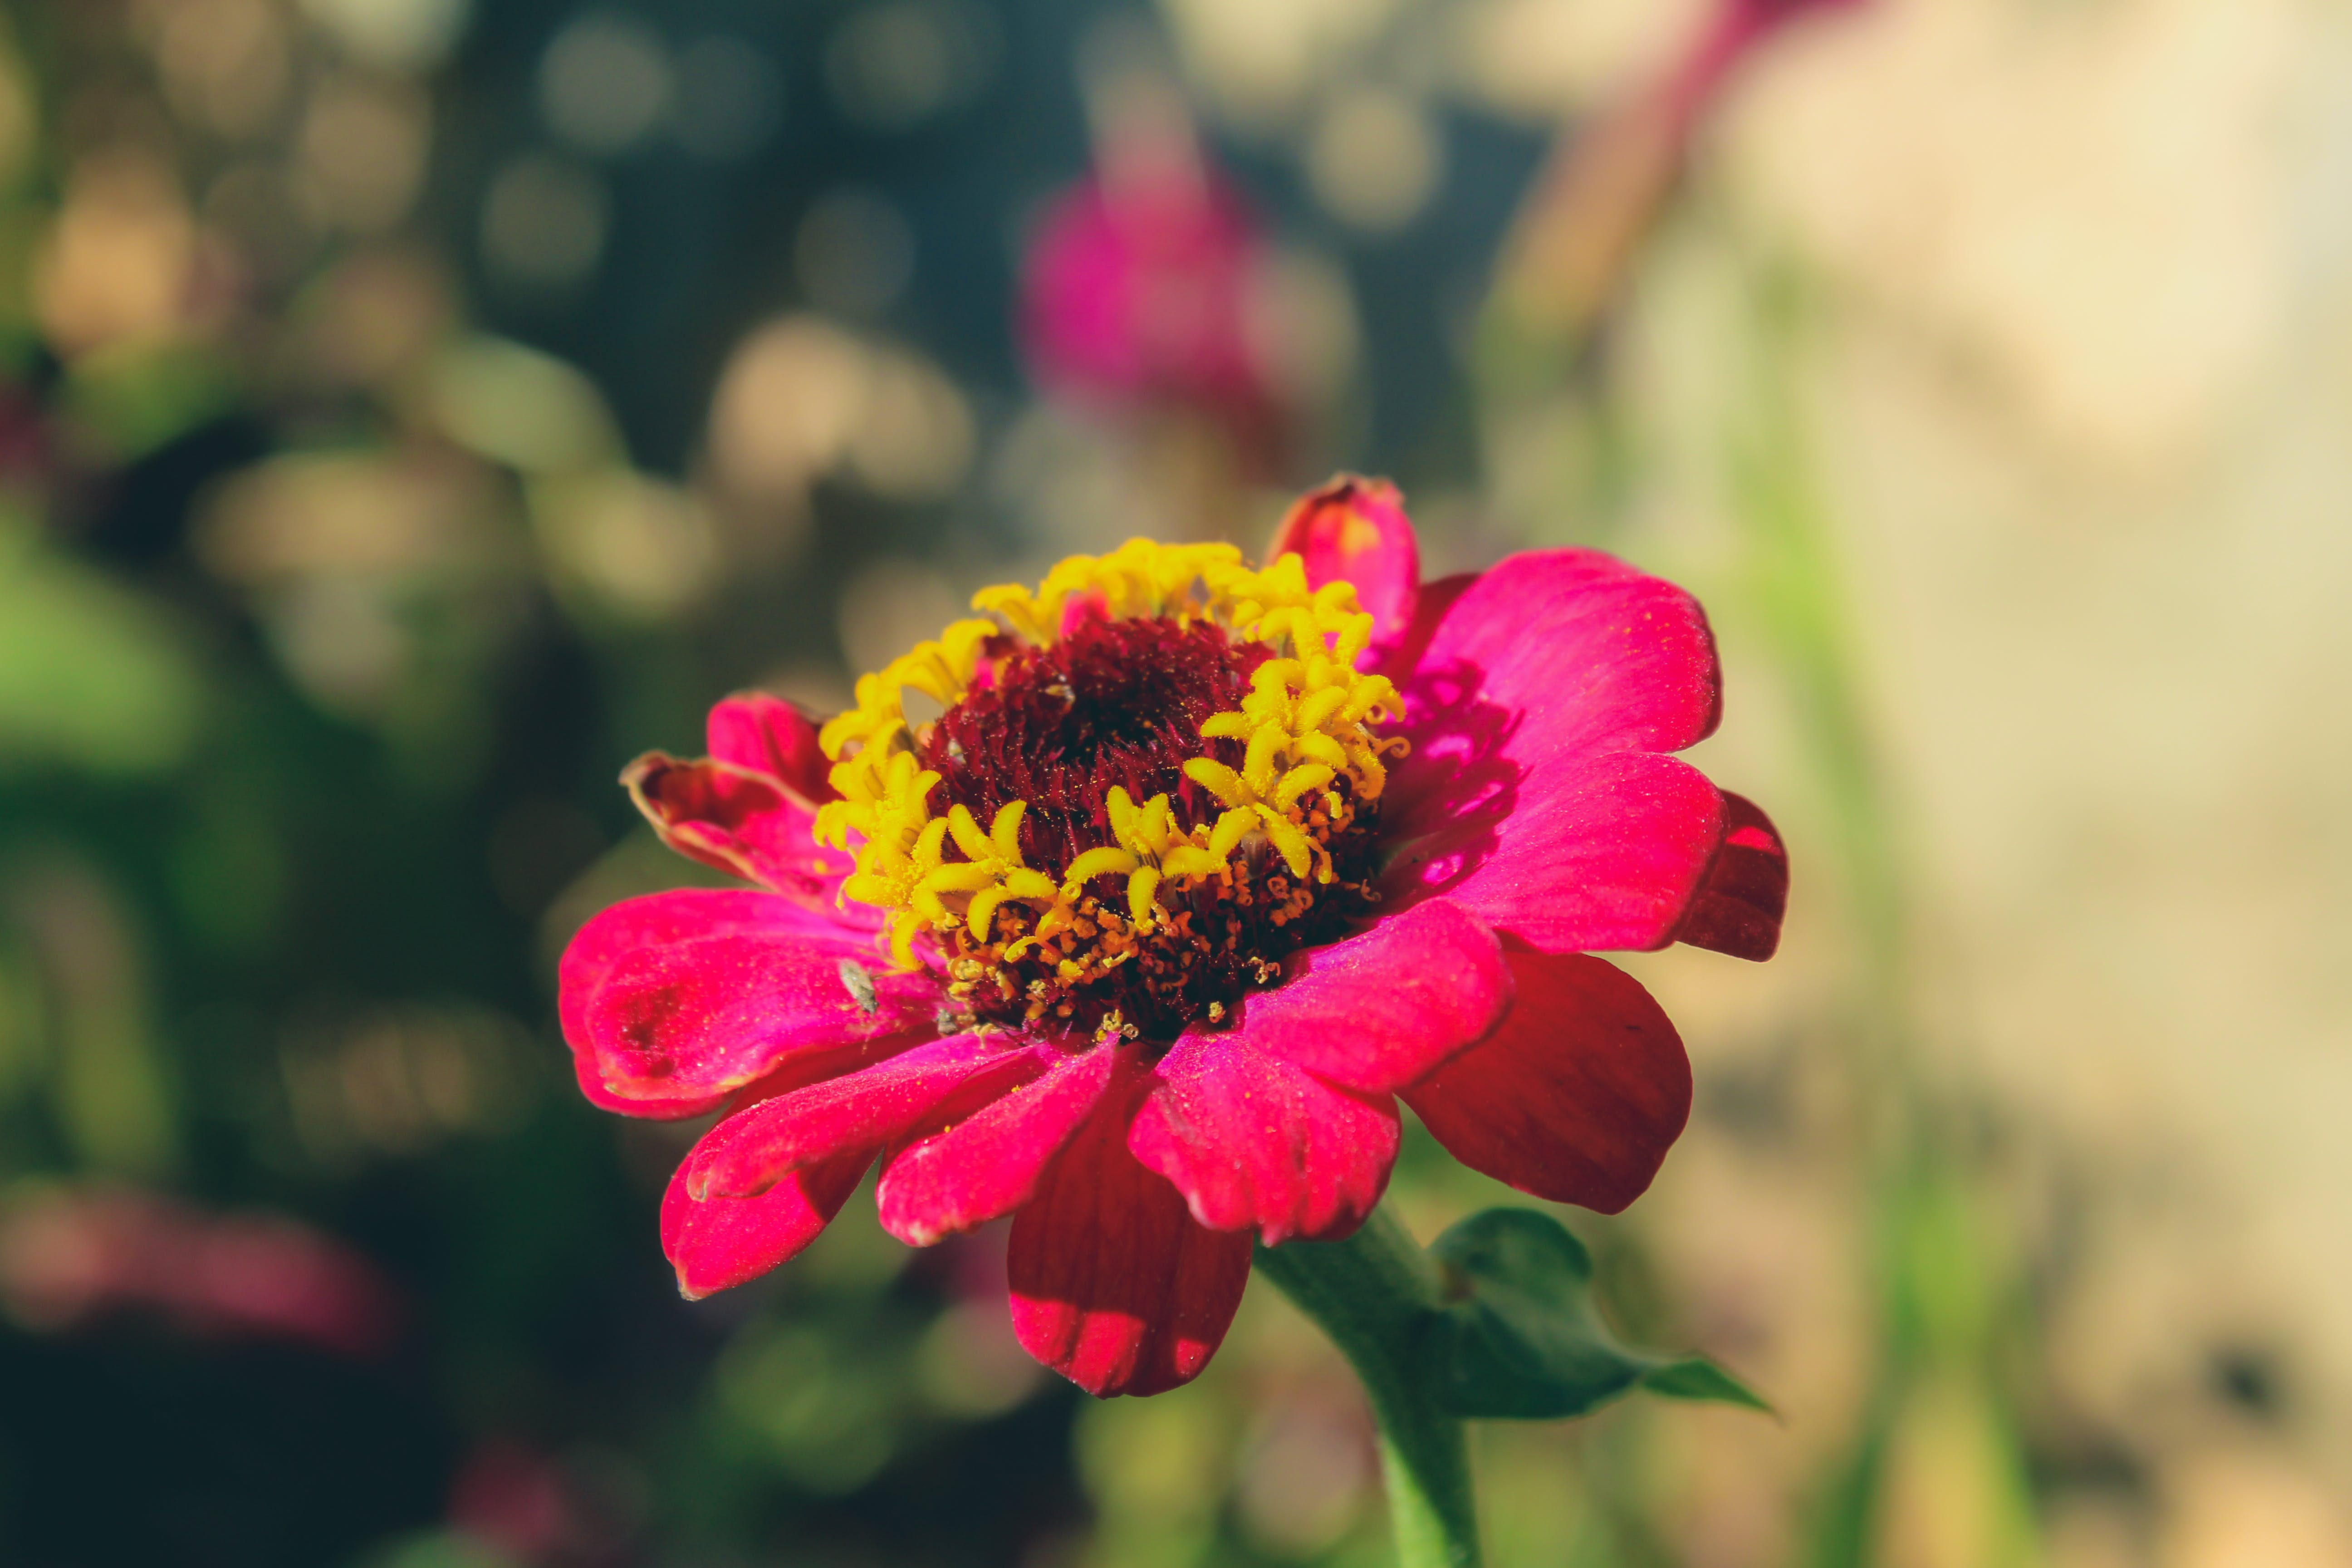 Selective Focus Photography of Red Zinnia Flower